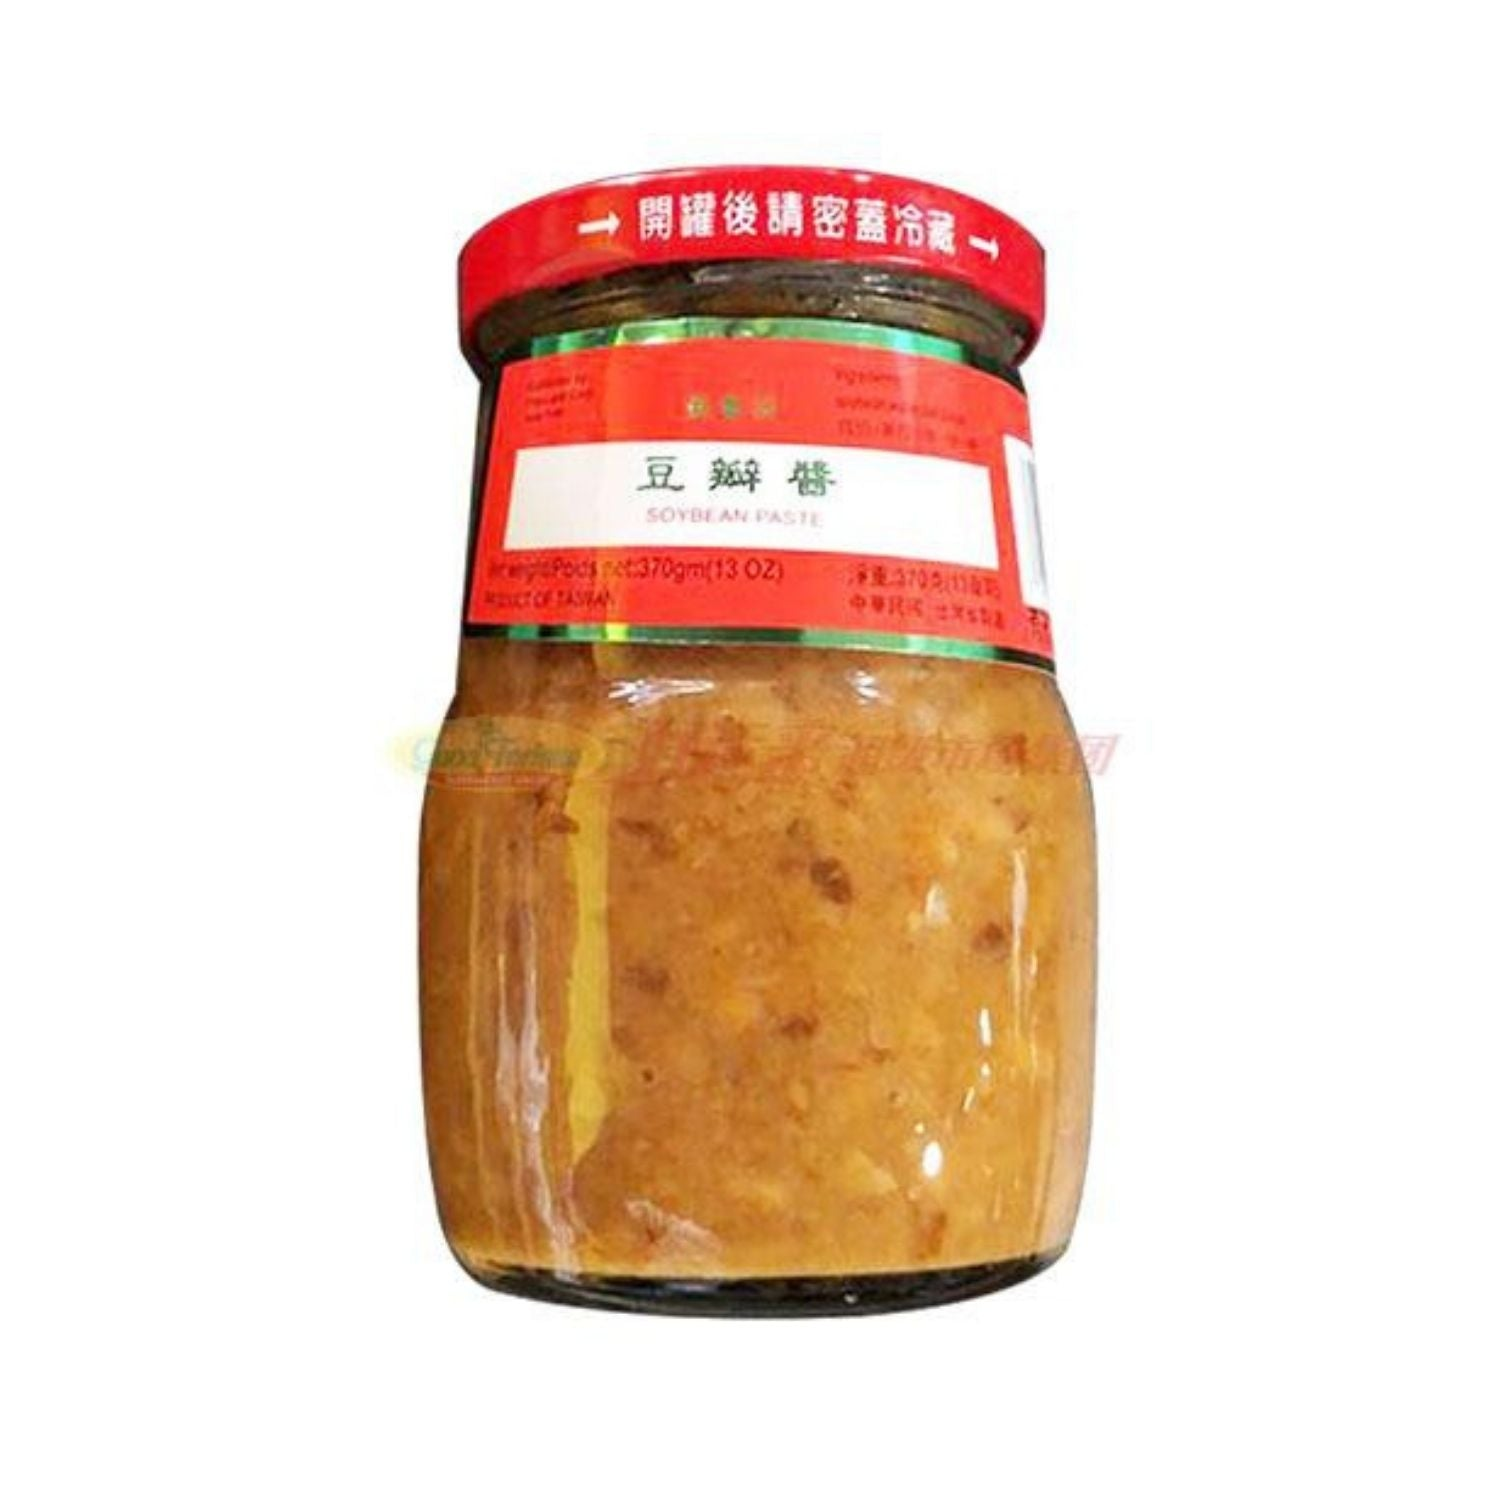 XinHuanGuan Soybean Paste